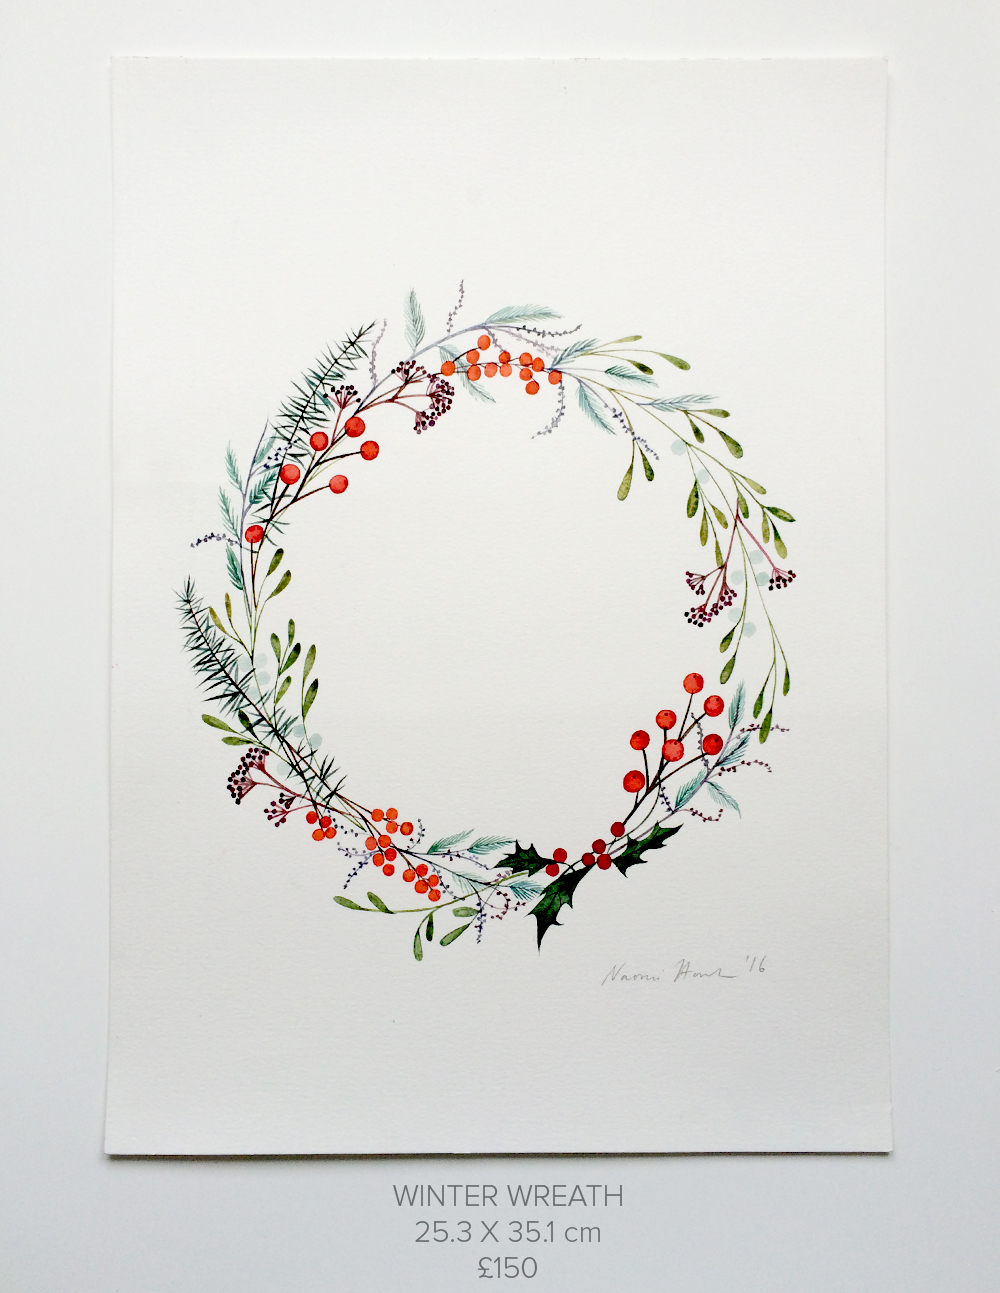 Winter-Wreath.jpg